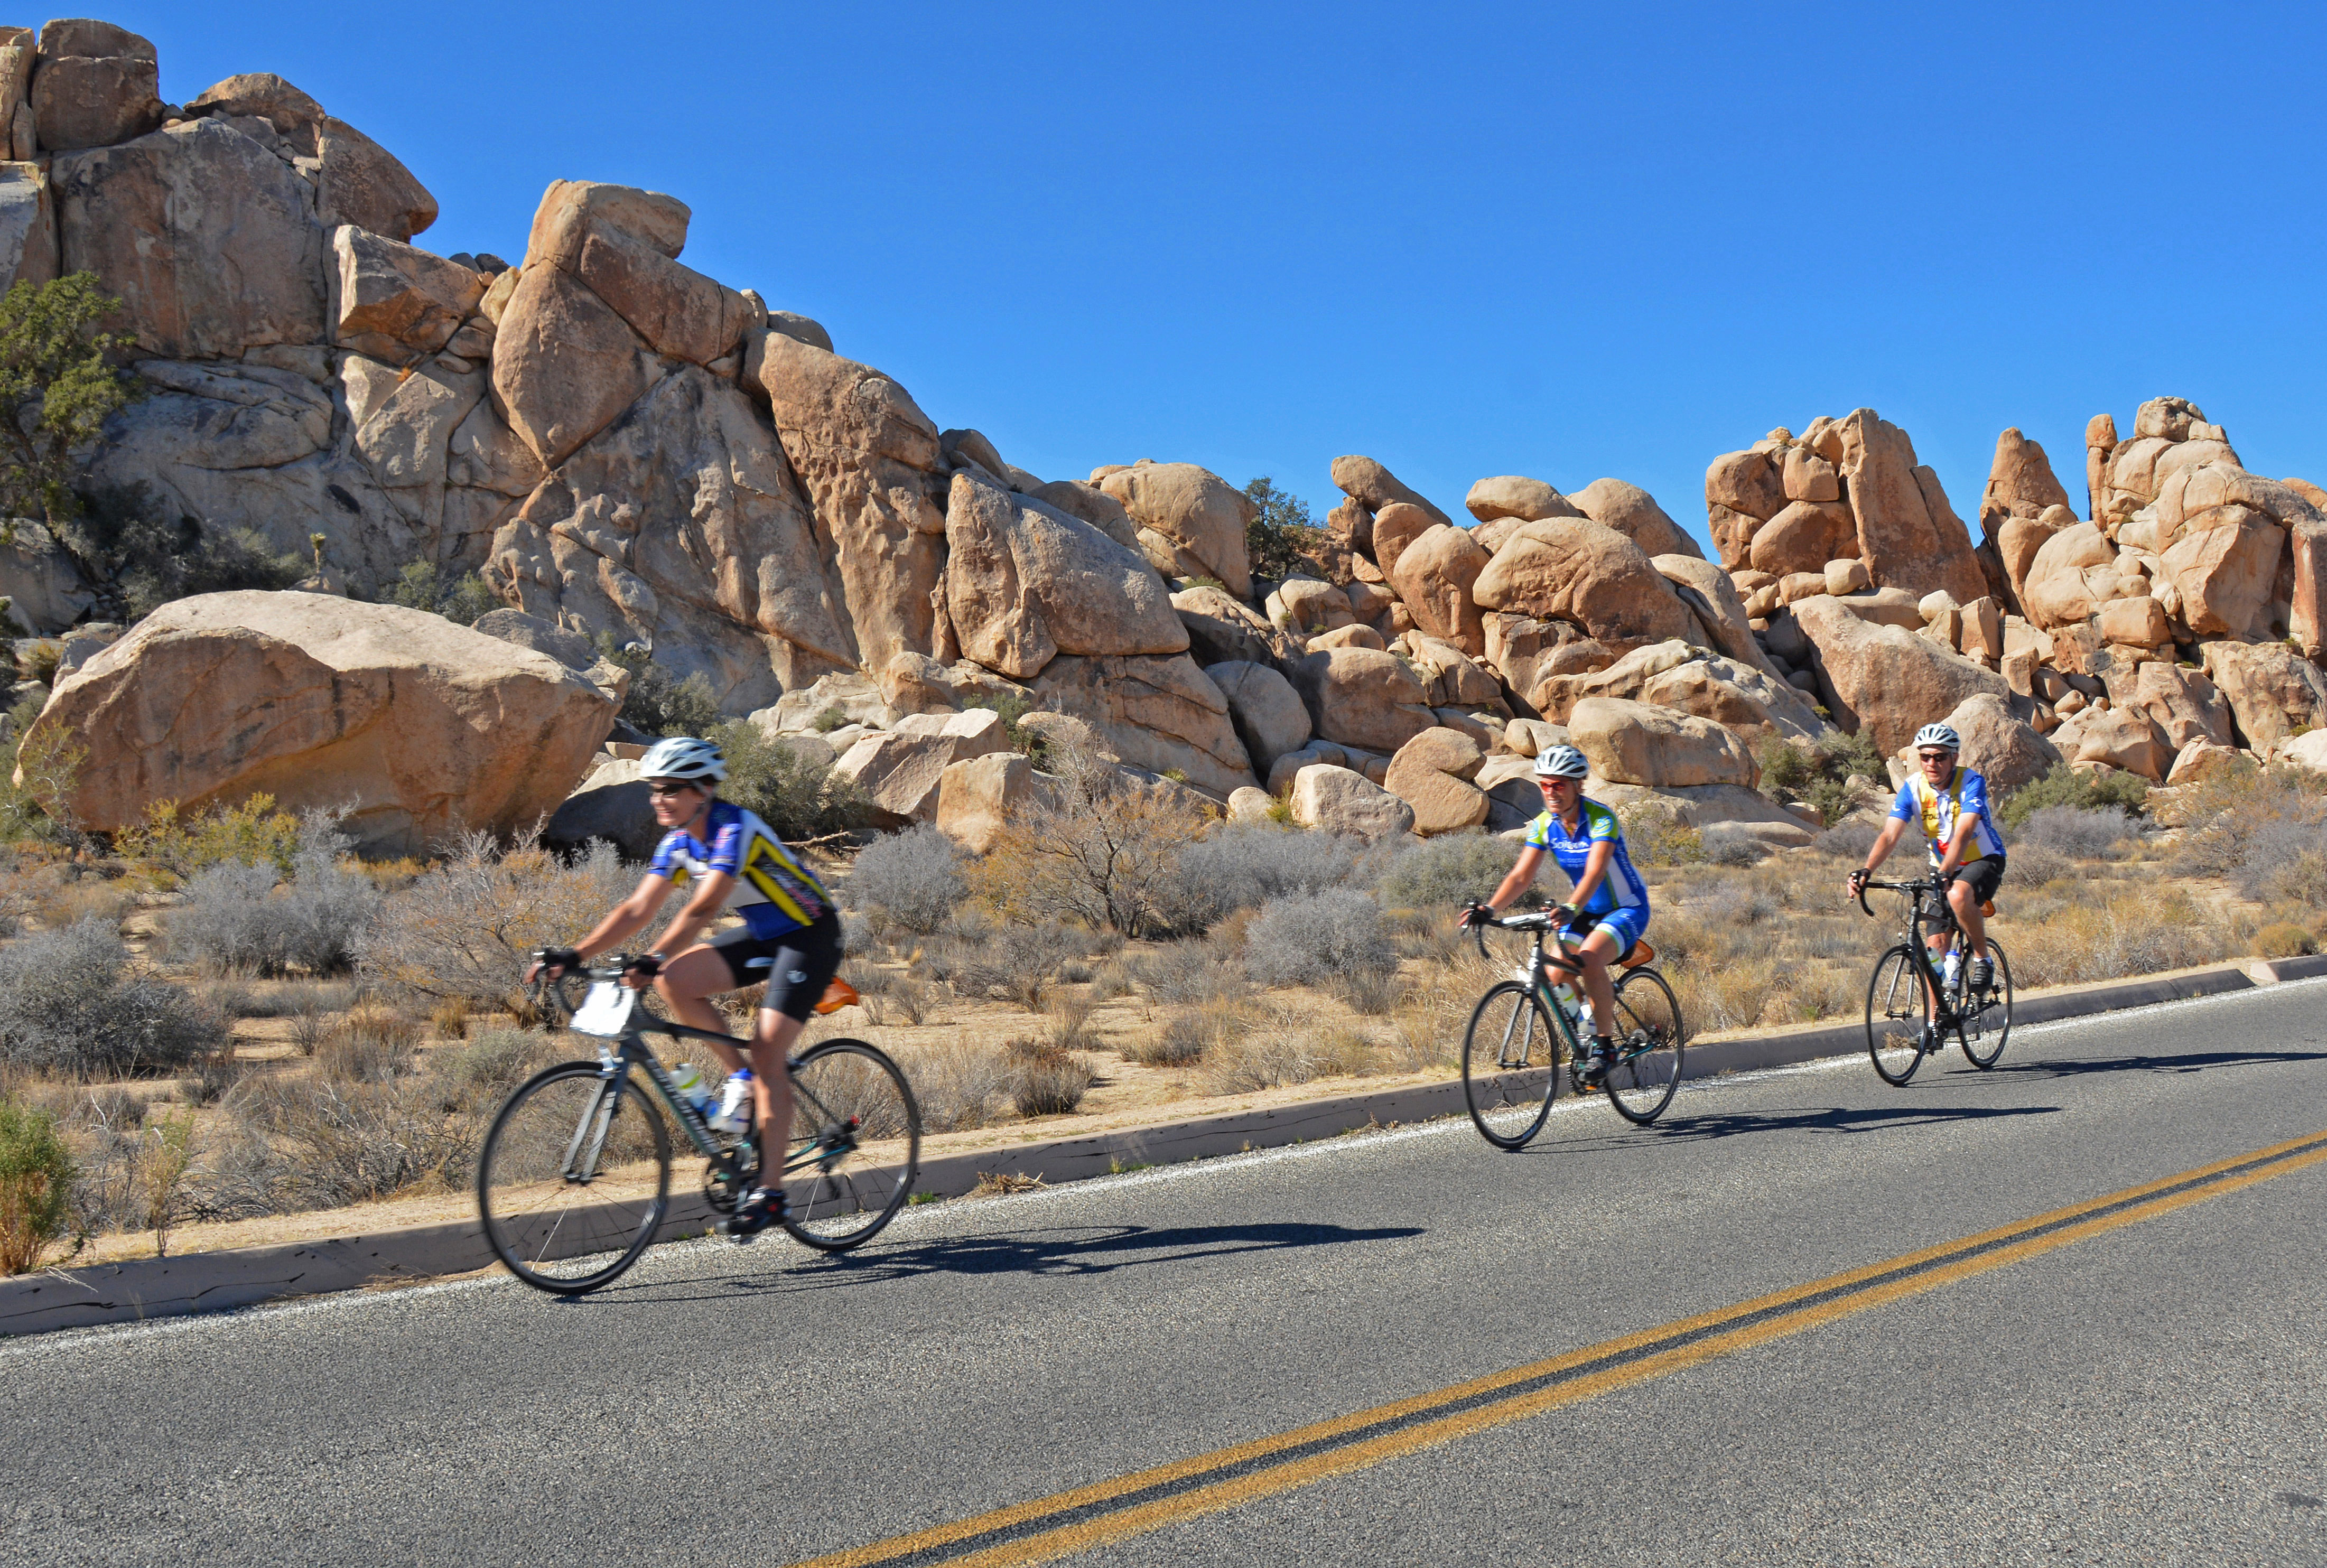 Biking Tours In Southern California